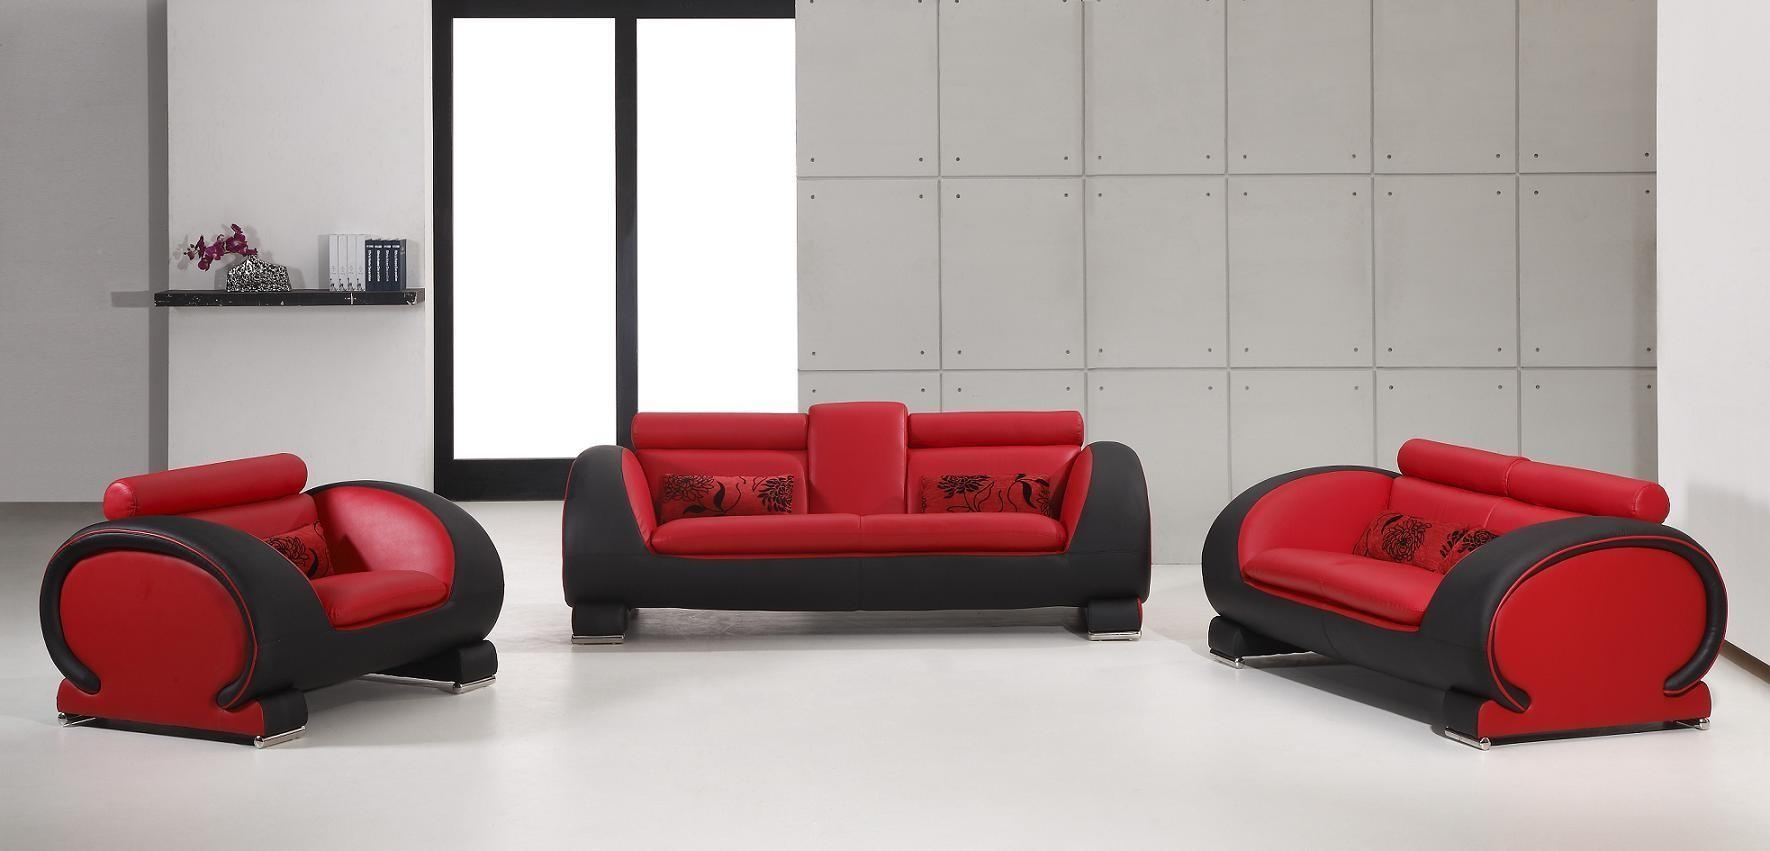 The Truth About Bonded Leather – La Furniture Blog With Regard To Bonded Leather Sofas (View 8 of 20)